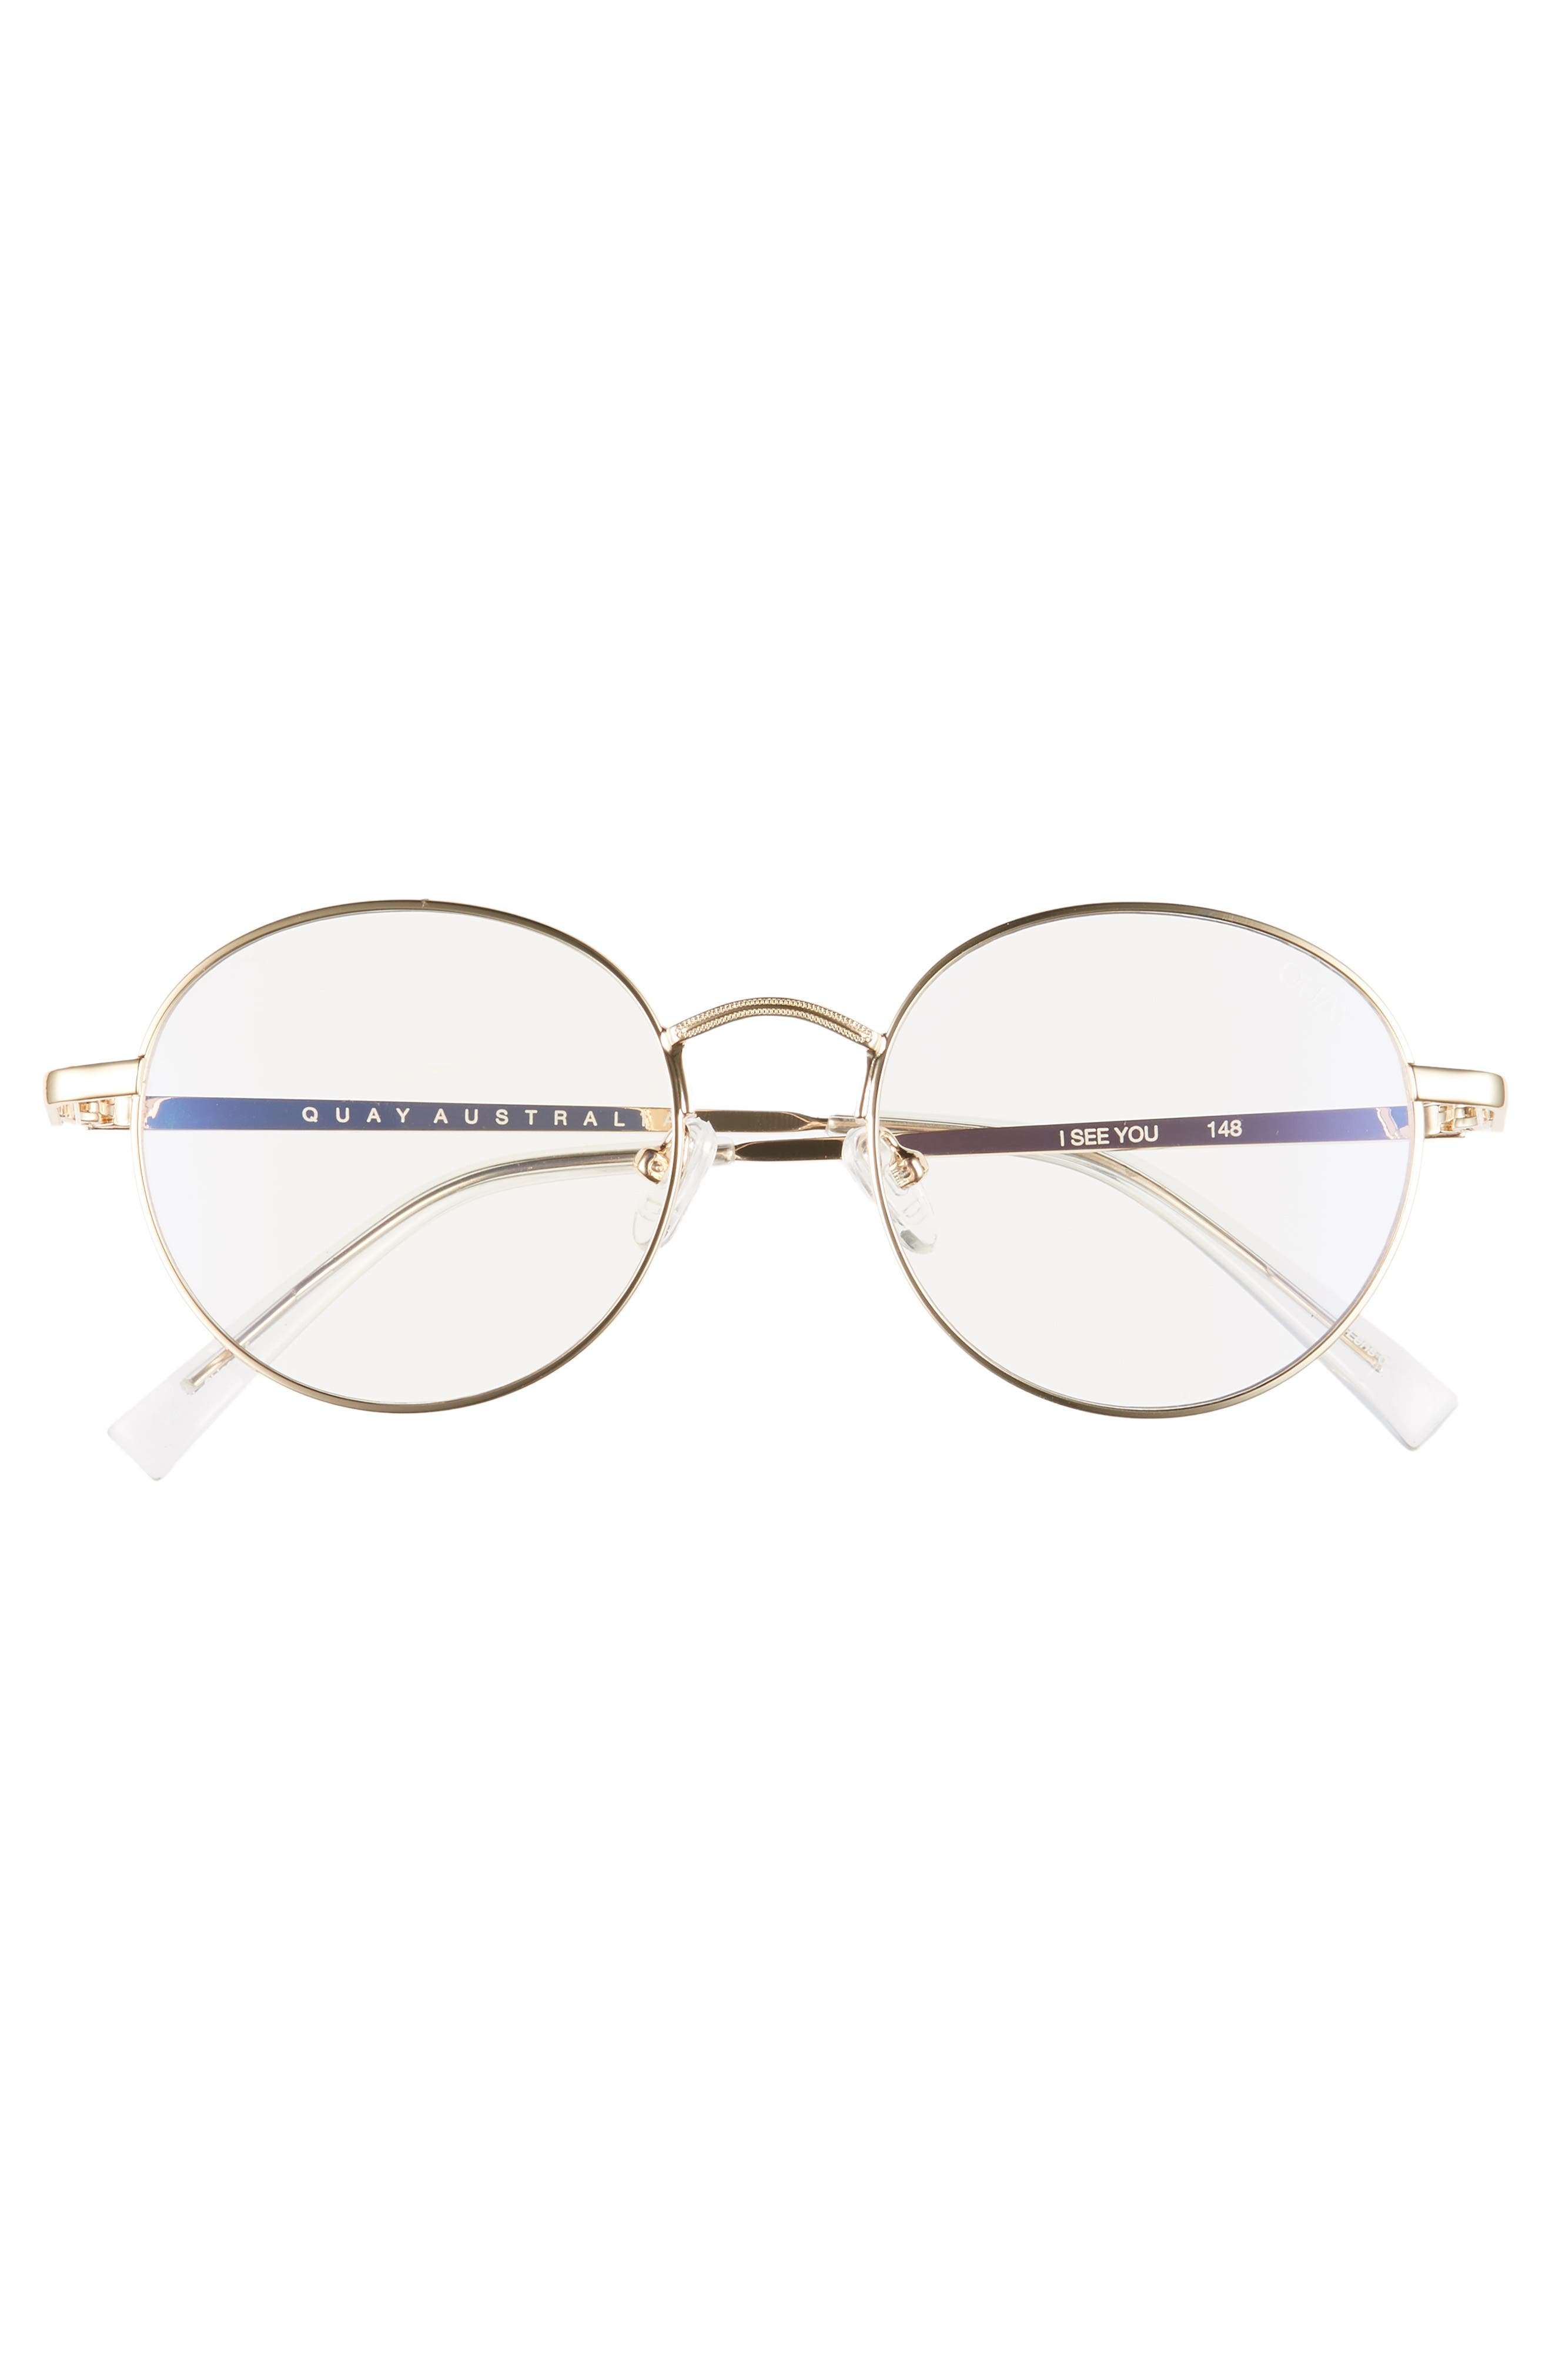 I See You 49mm Round Fashion Glasses,                             Alternate thumbnail 3, color,                             GOLD/ CLEAR